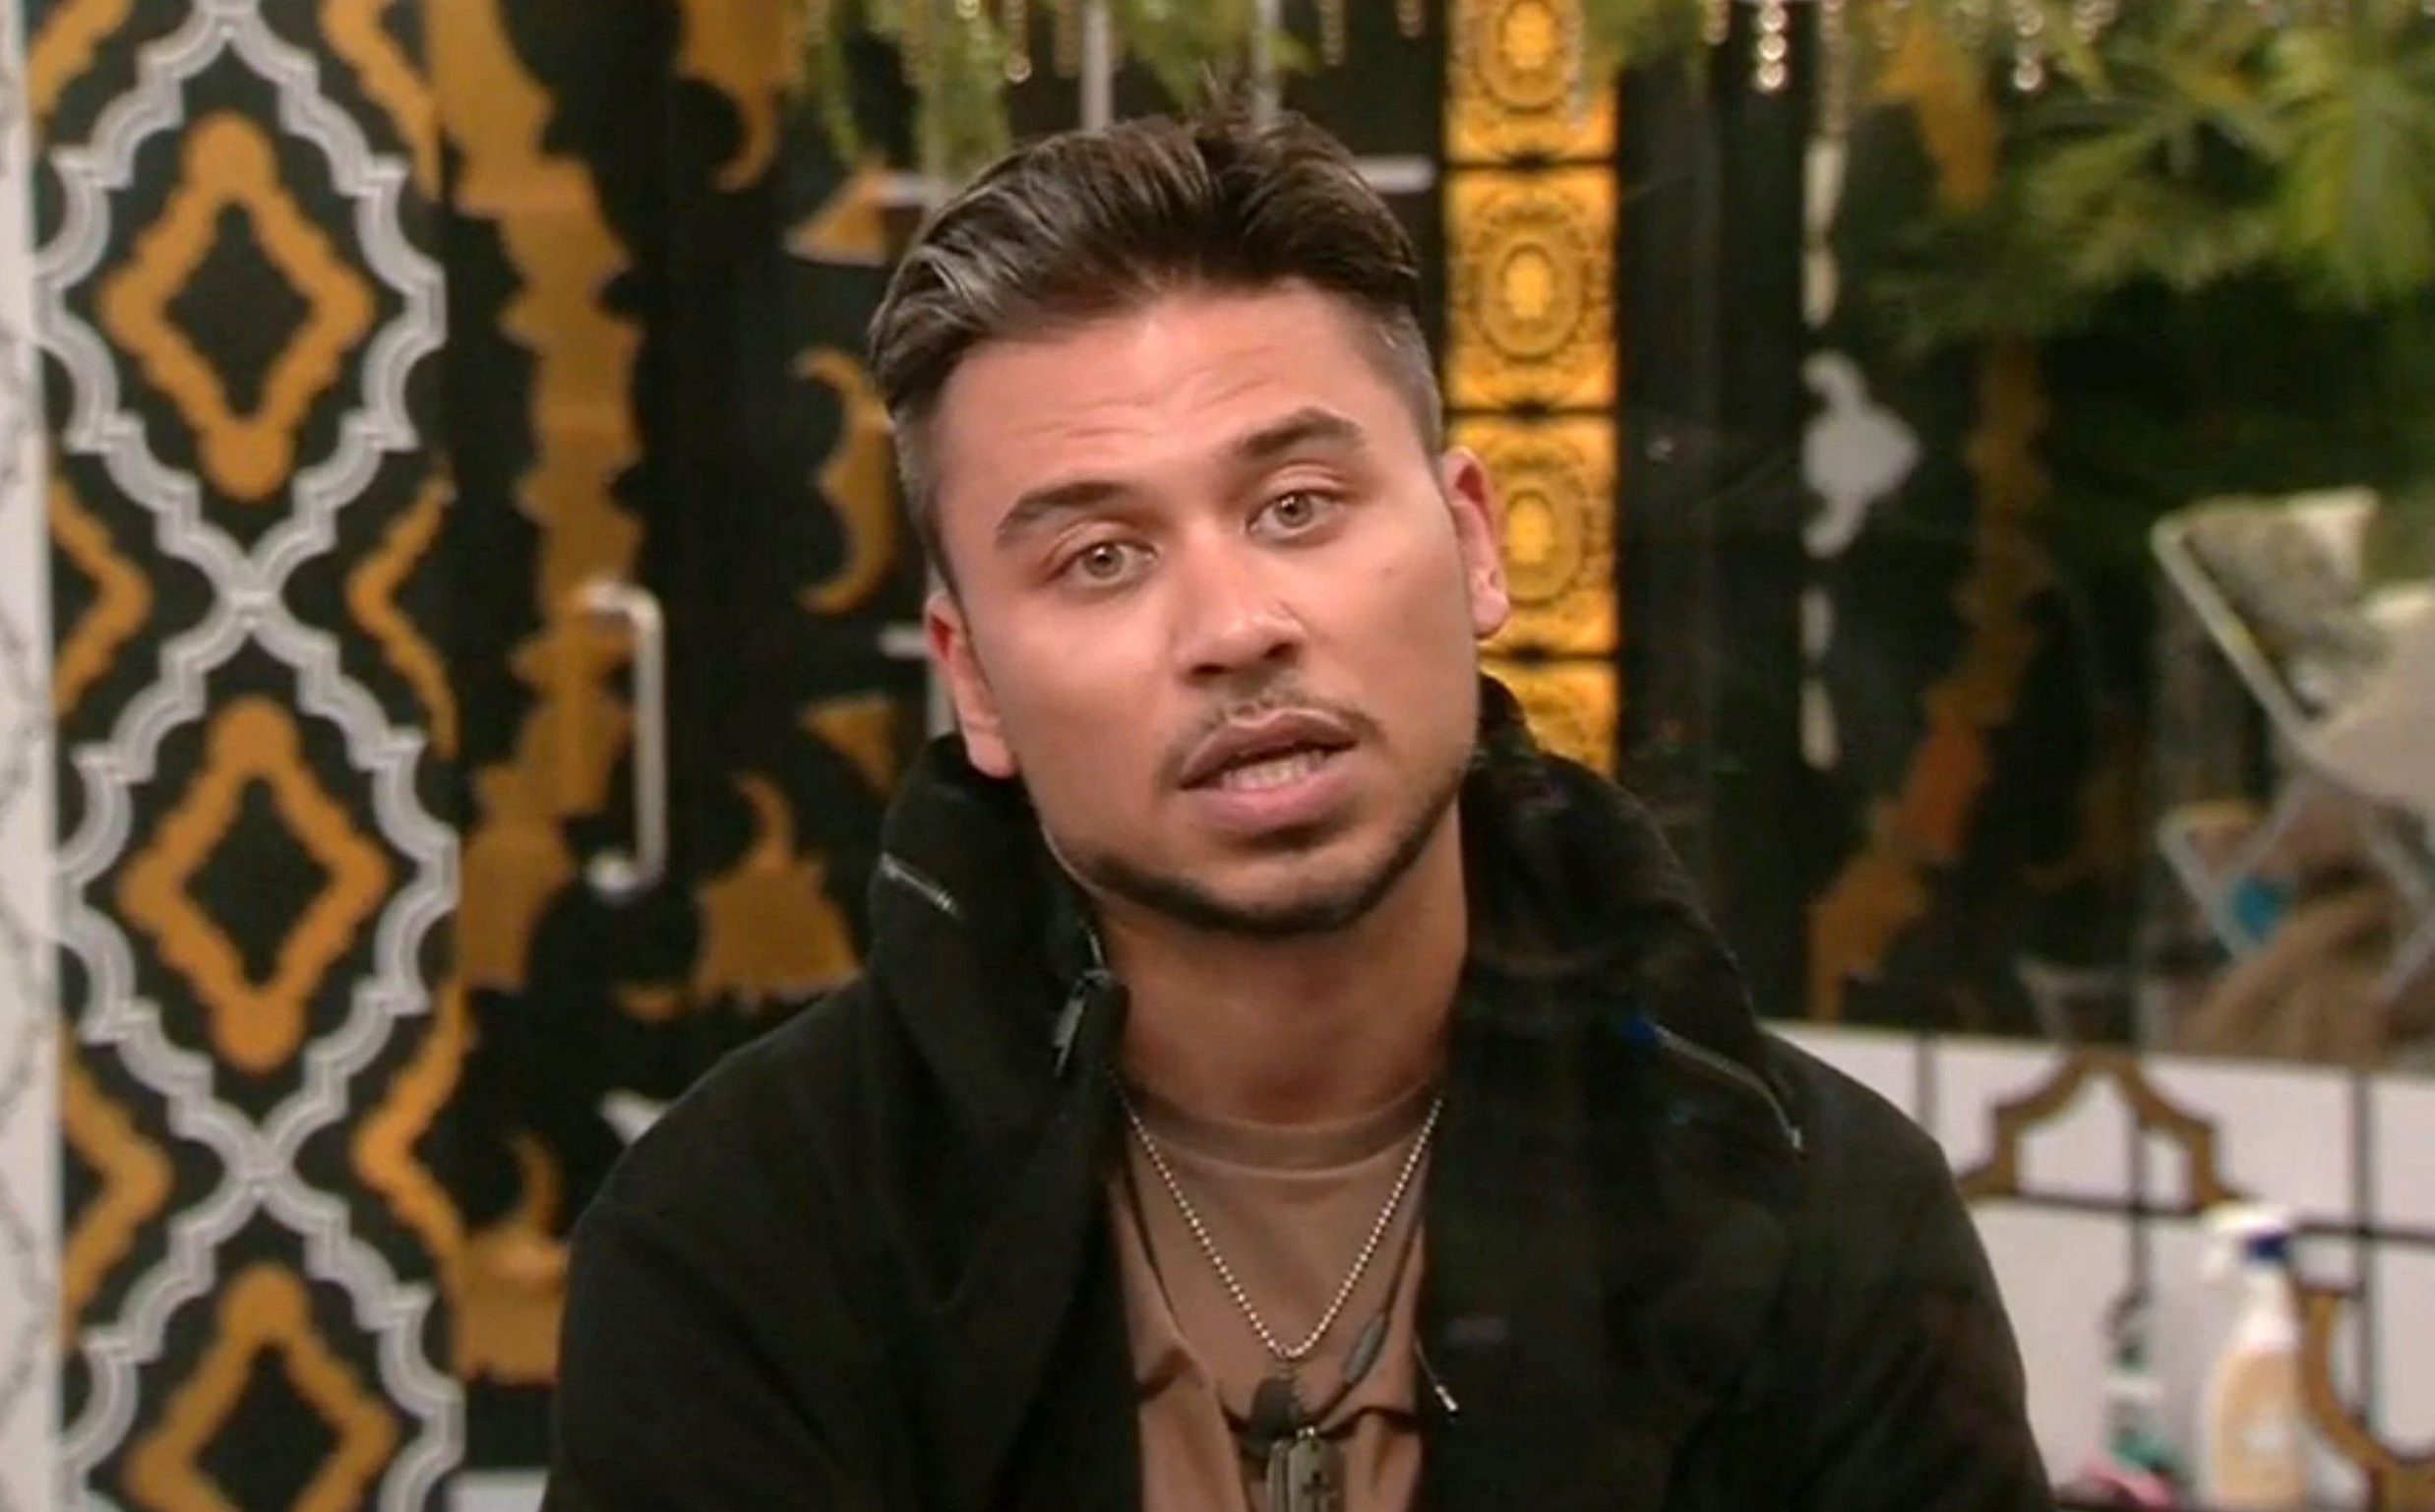 Editorial Use Only Mandatory Credit: Photo by REX/Shutterstock (5828117d) Ricky Norwood 'Celebrity Big Brother' TV show, Elstree Studios, Hertfordshire, UK - 12 Aug 2016